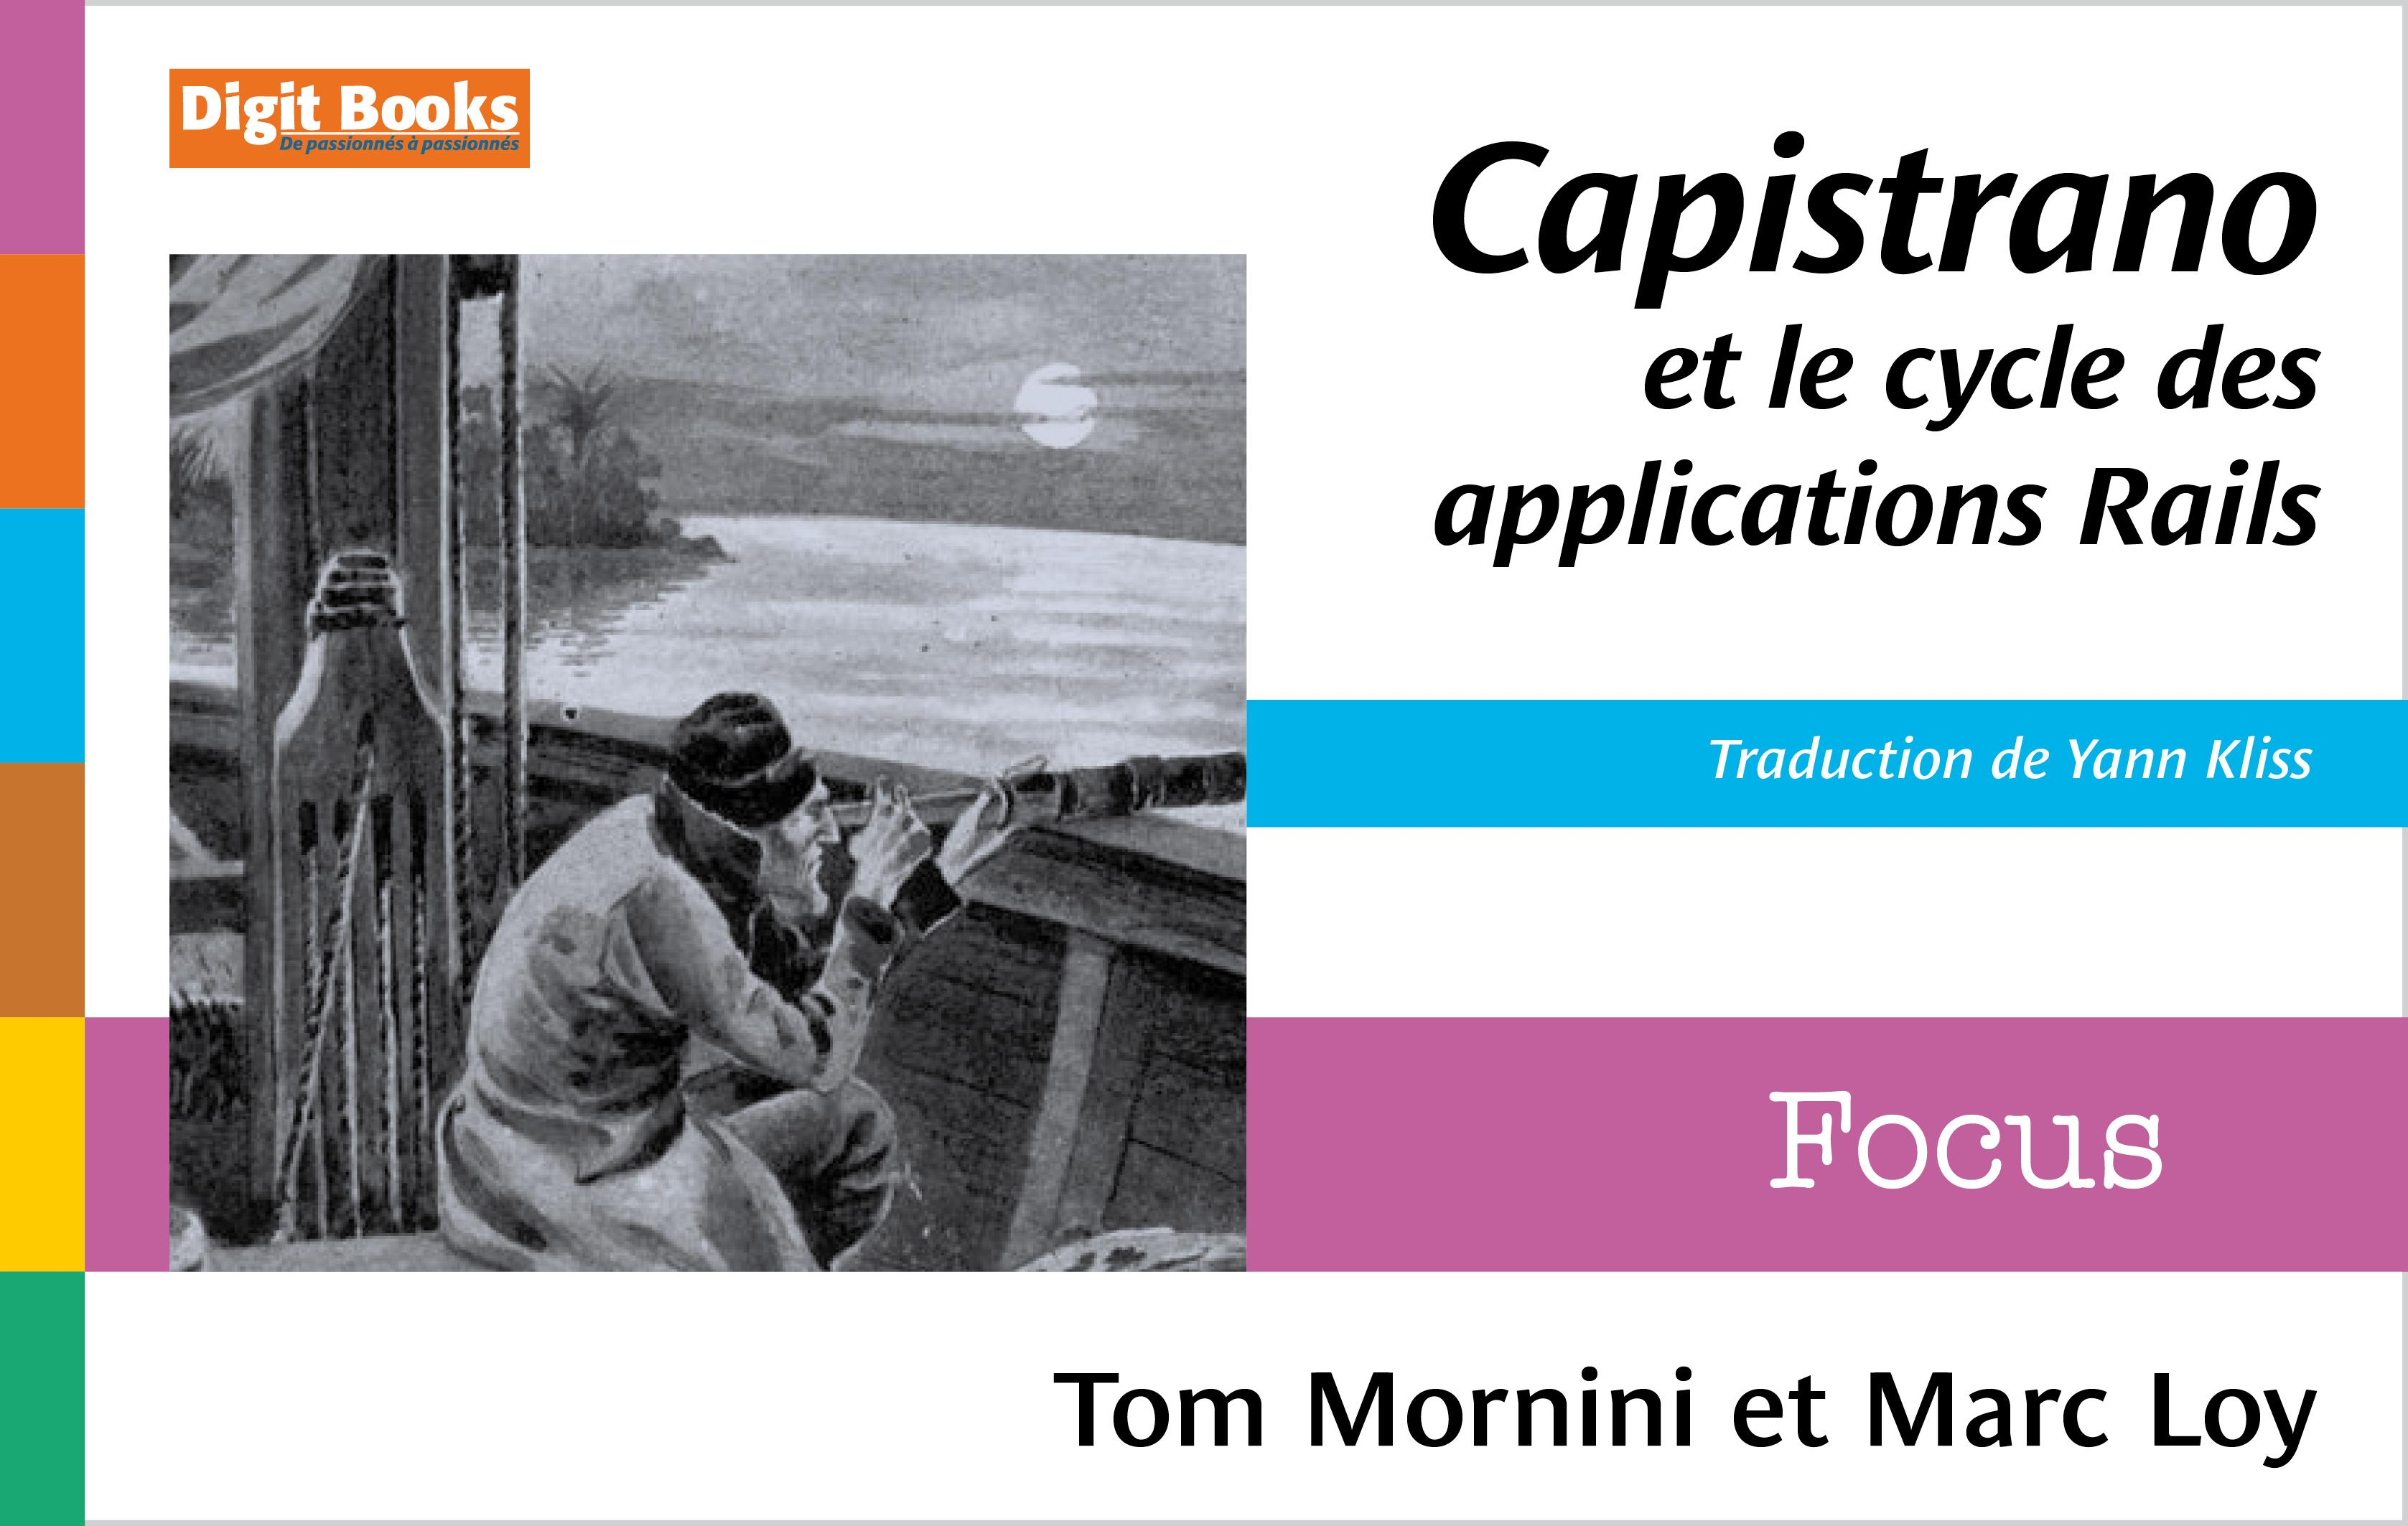 Capistrano et le cycle de vie des applications Rails